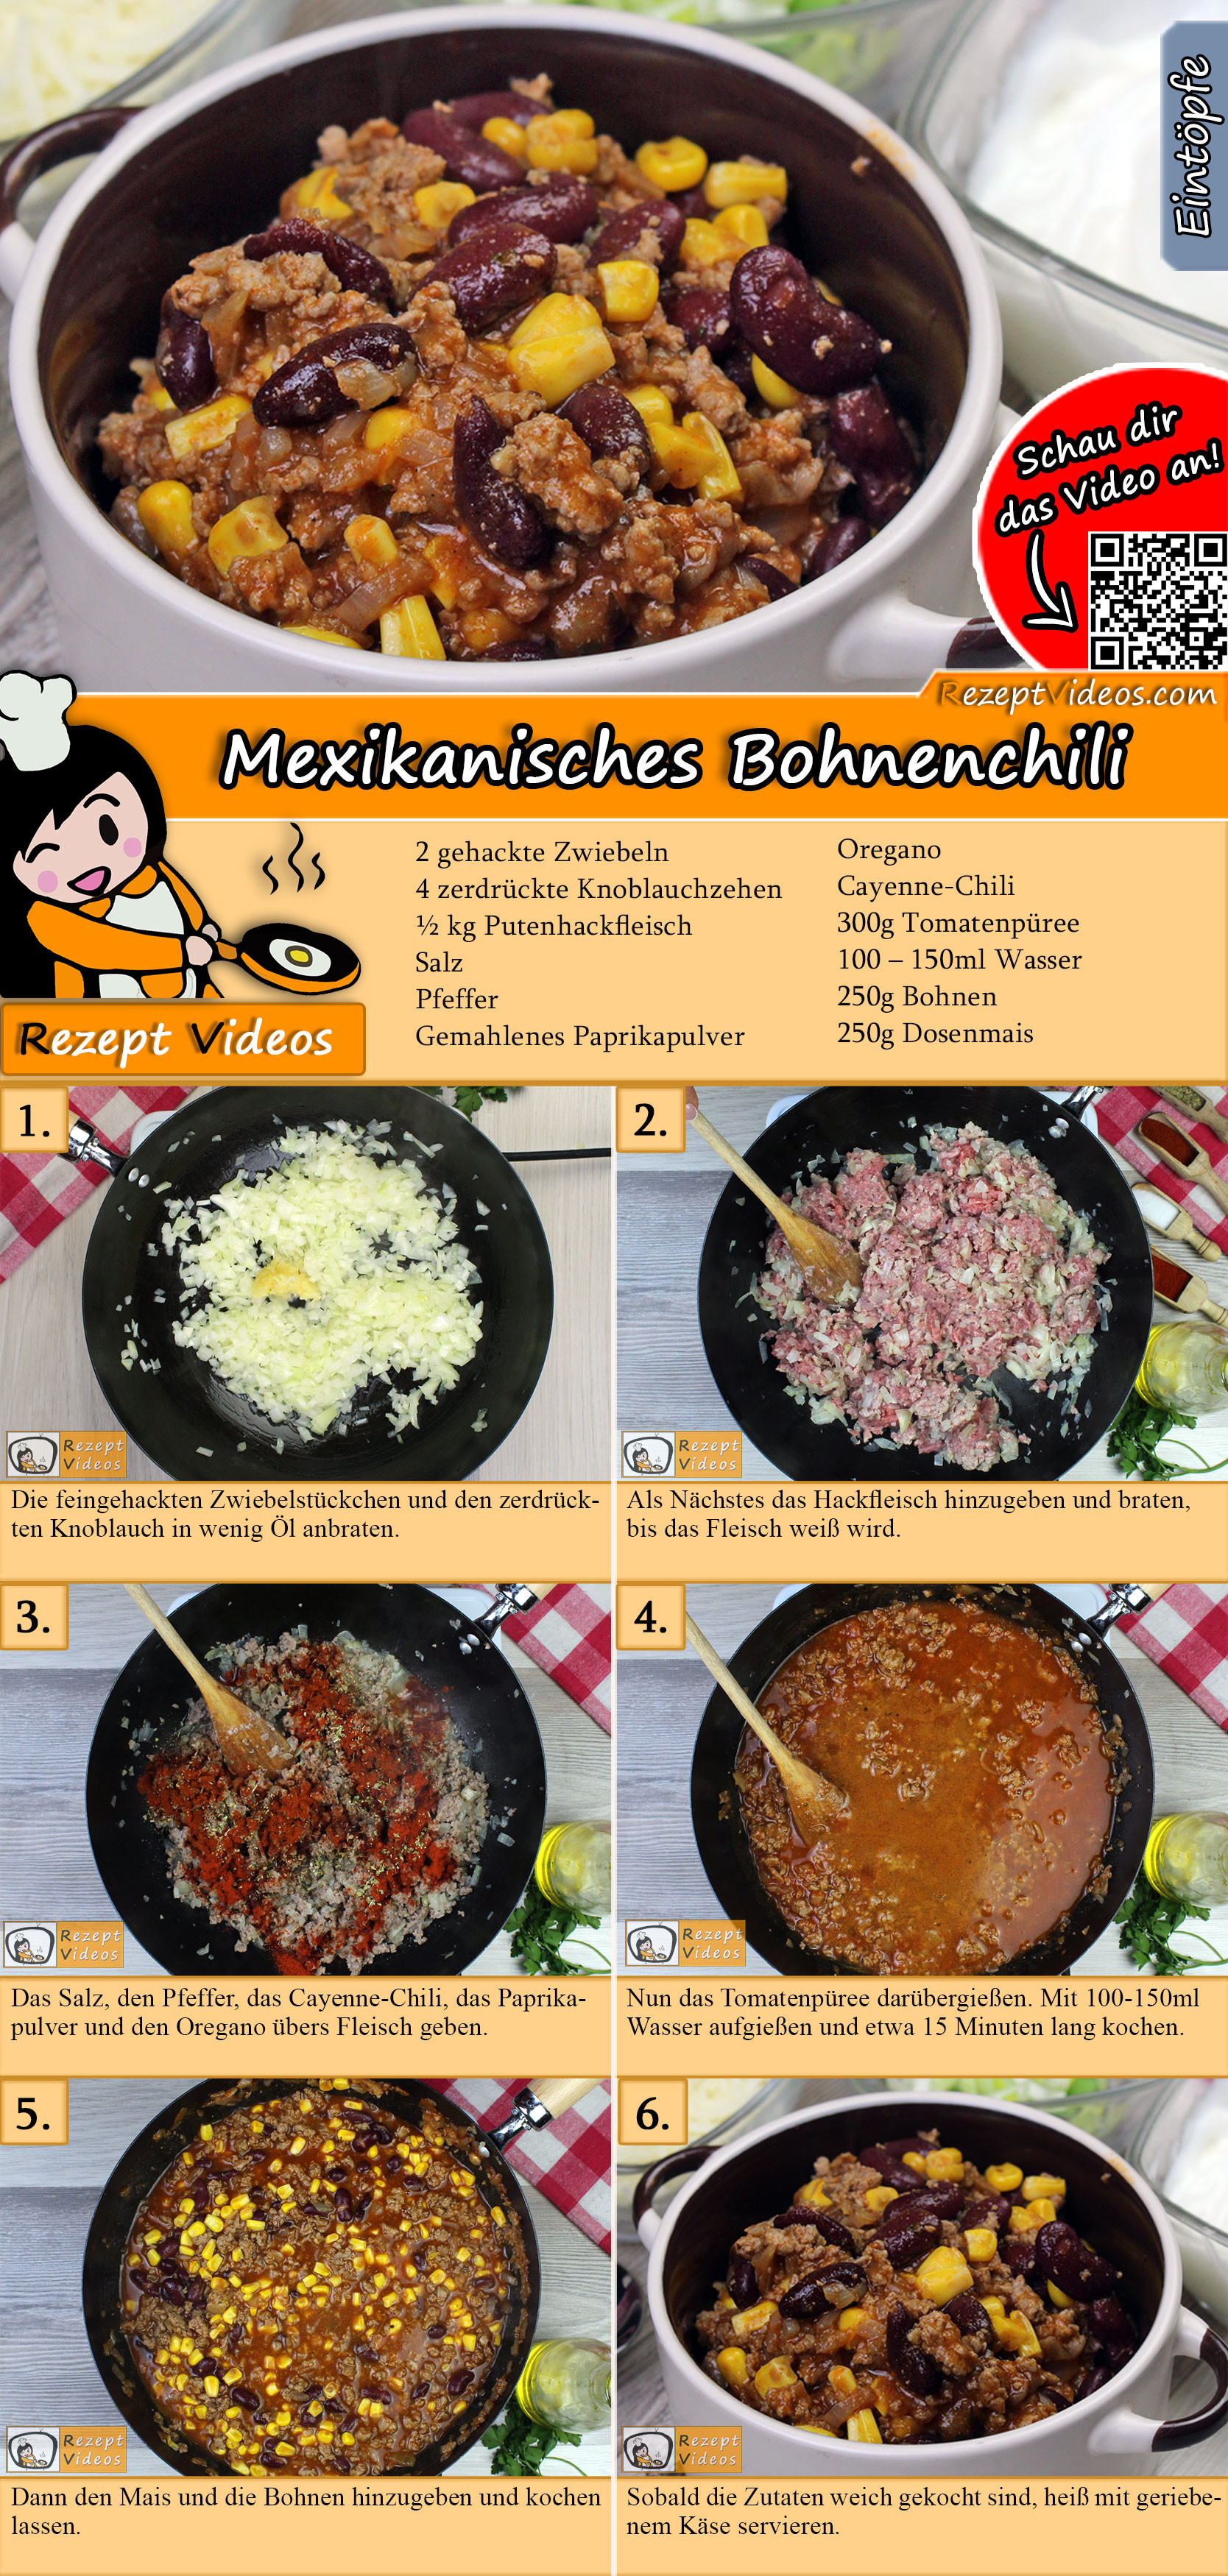 Mexikanisches Bohnenchili Rezept mit Video